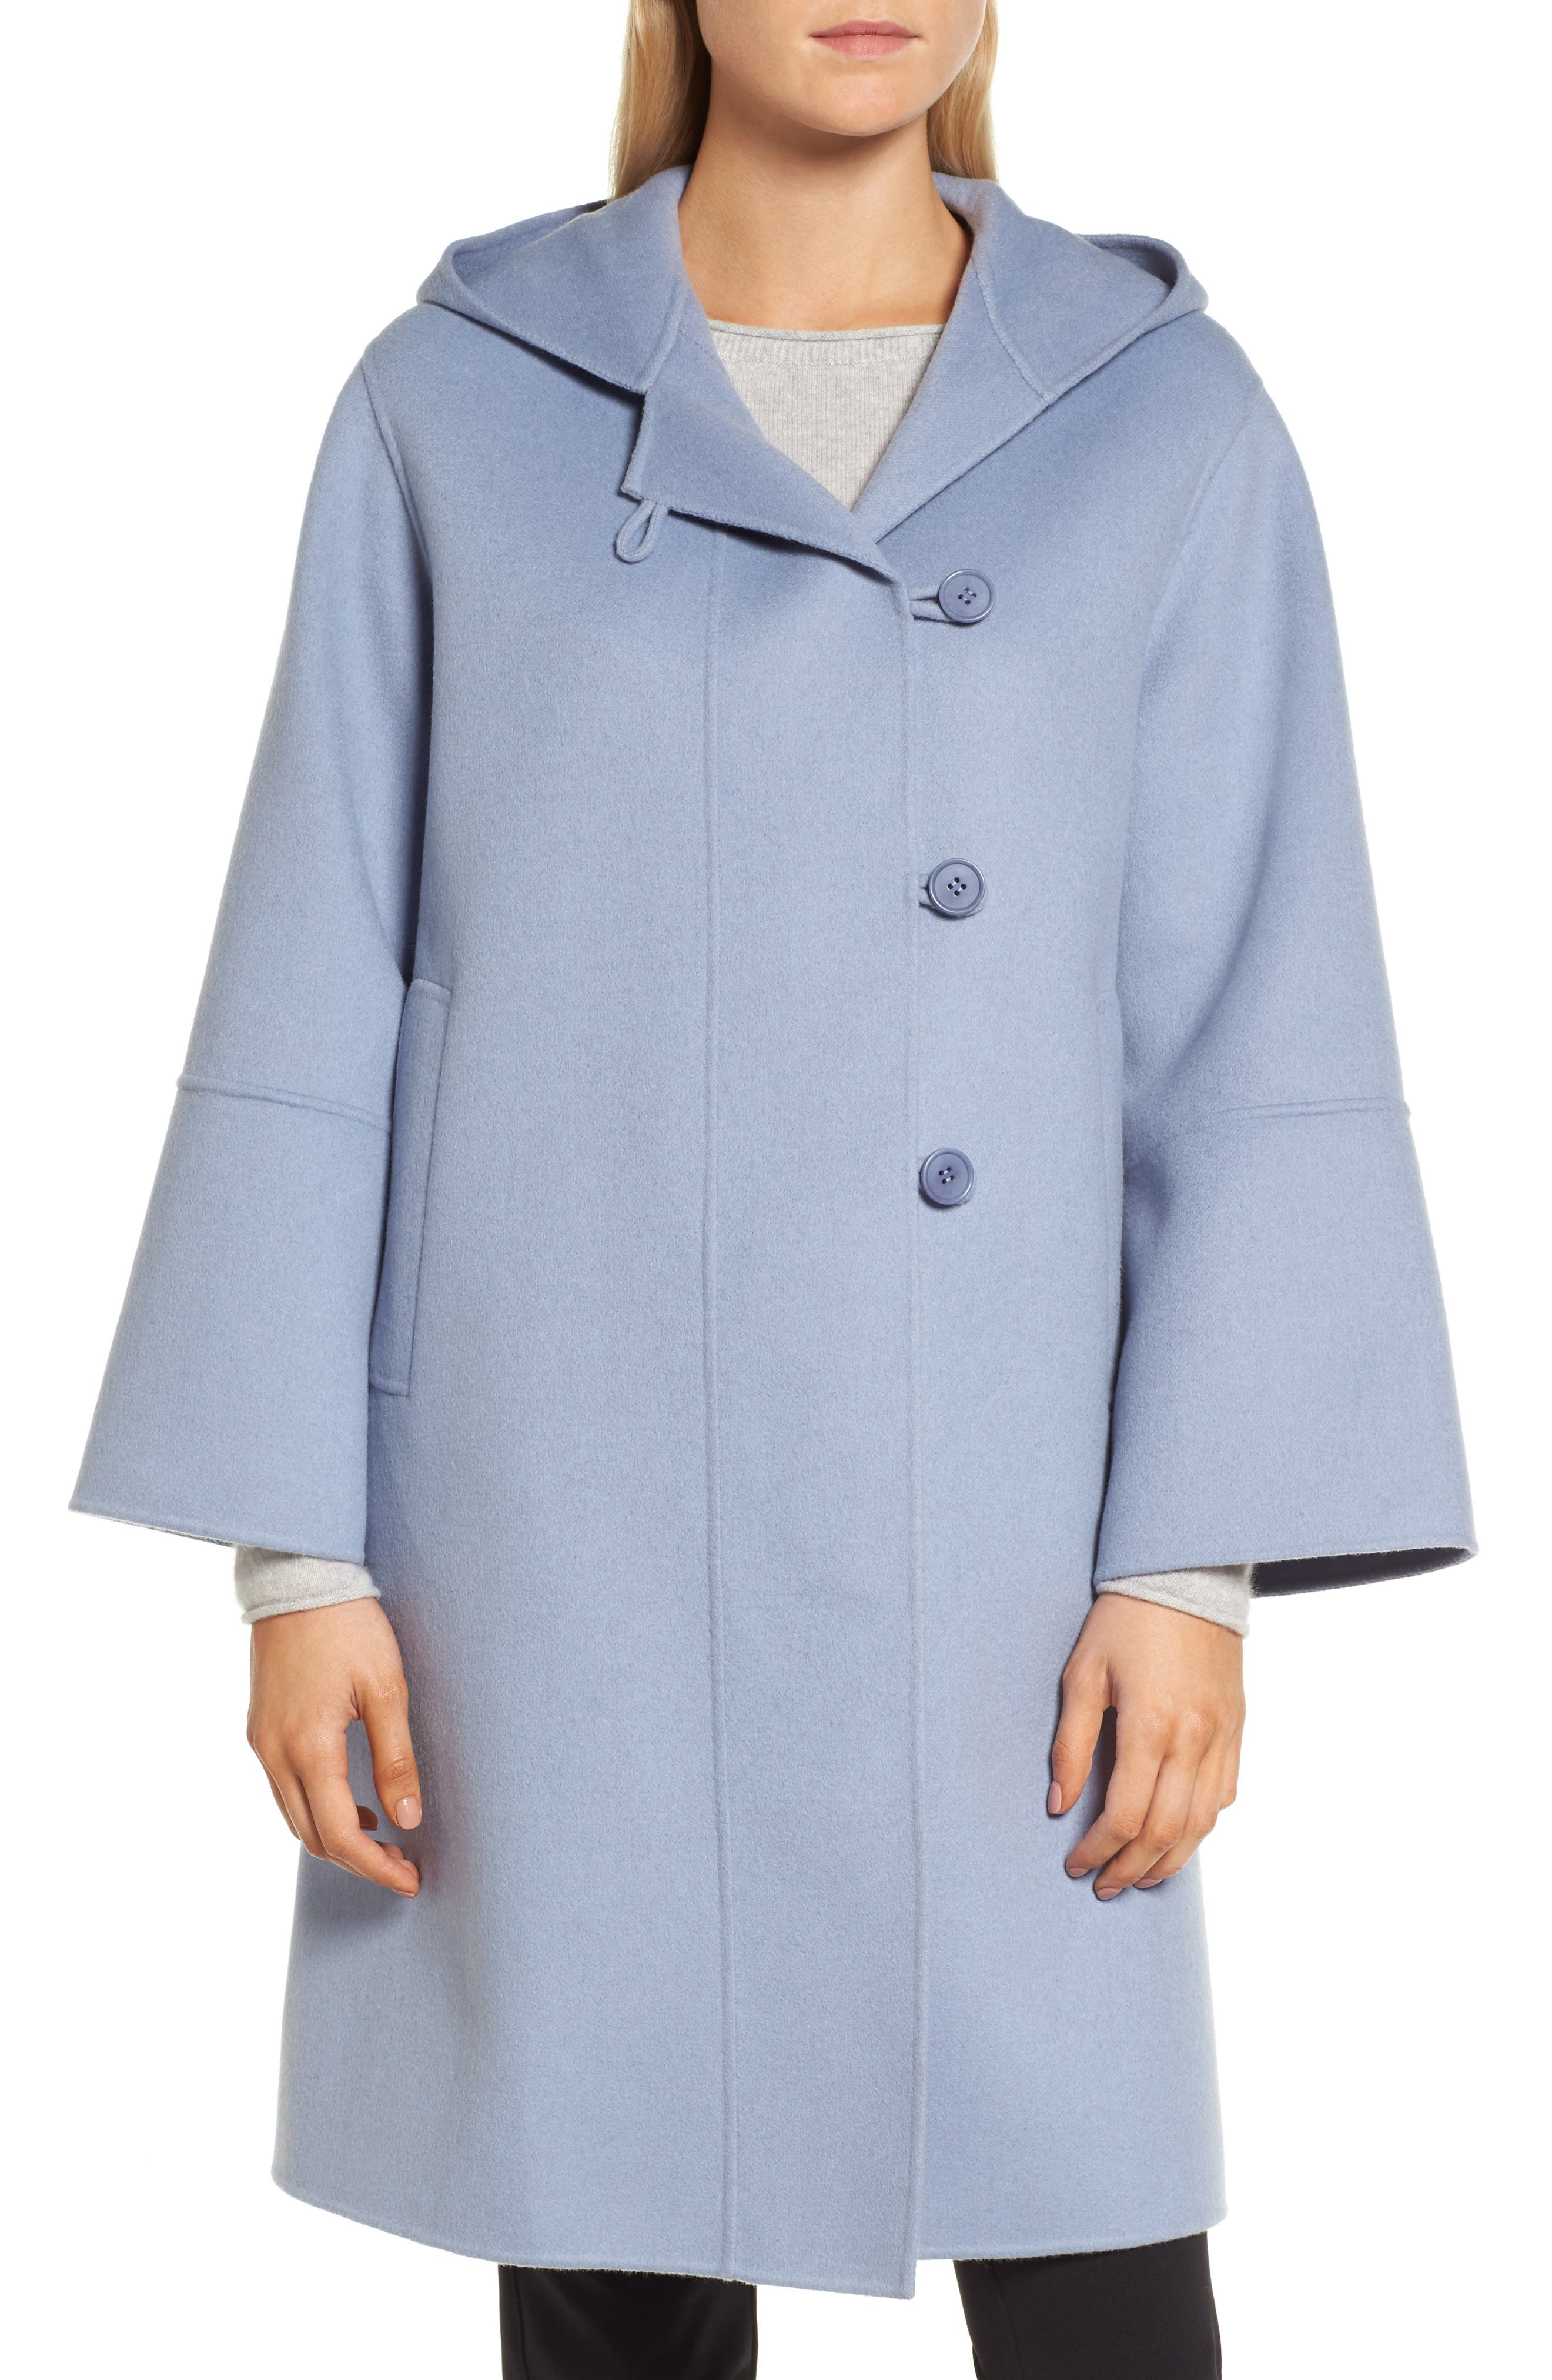 Hooded Wool & Cashmere Coat,                             Alternate thumbnail 4, color,                             Blue Tempest